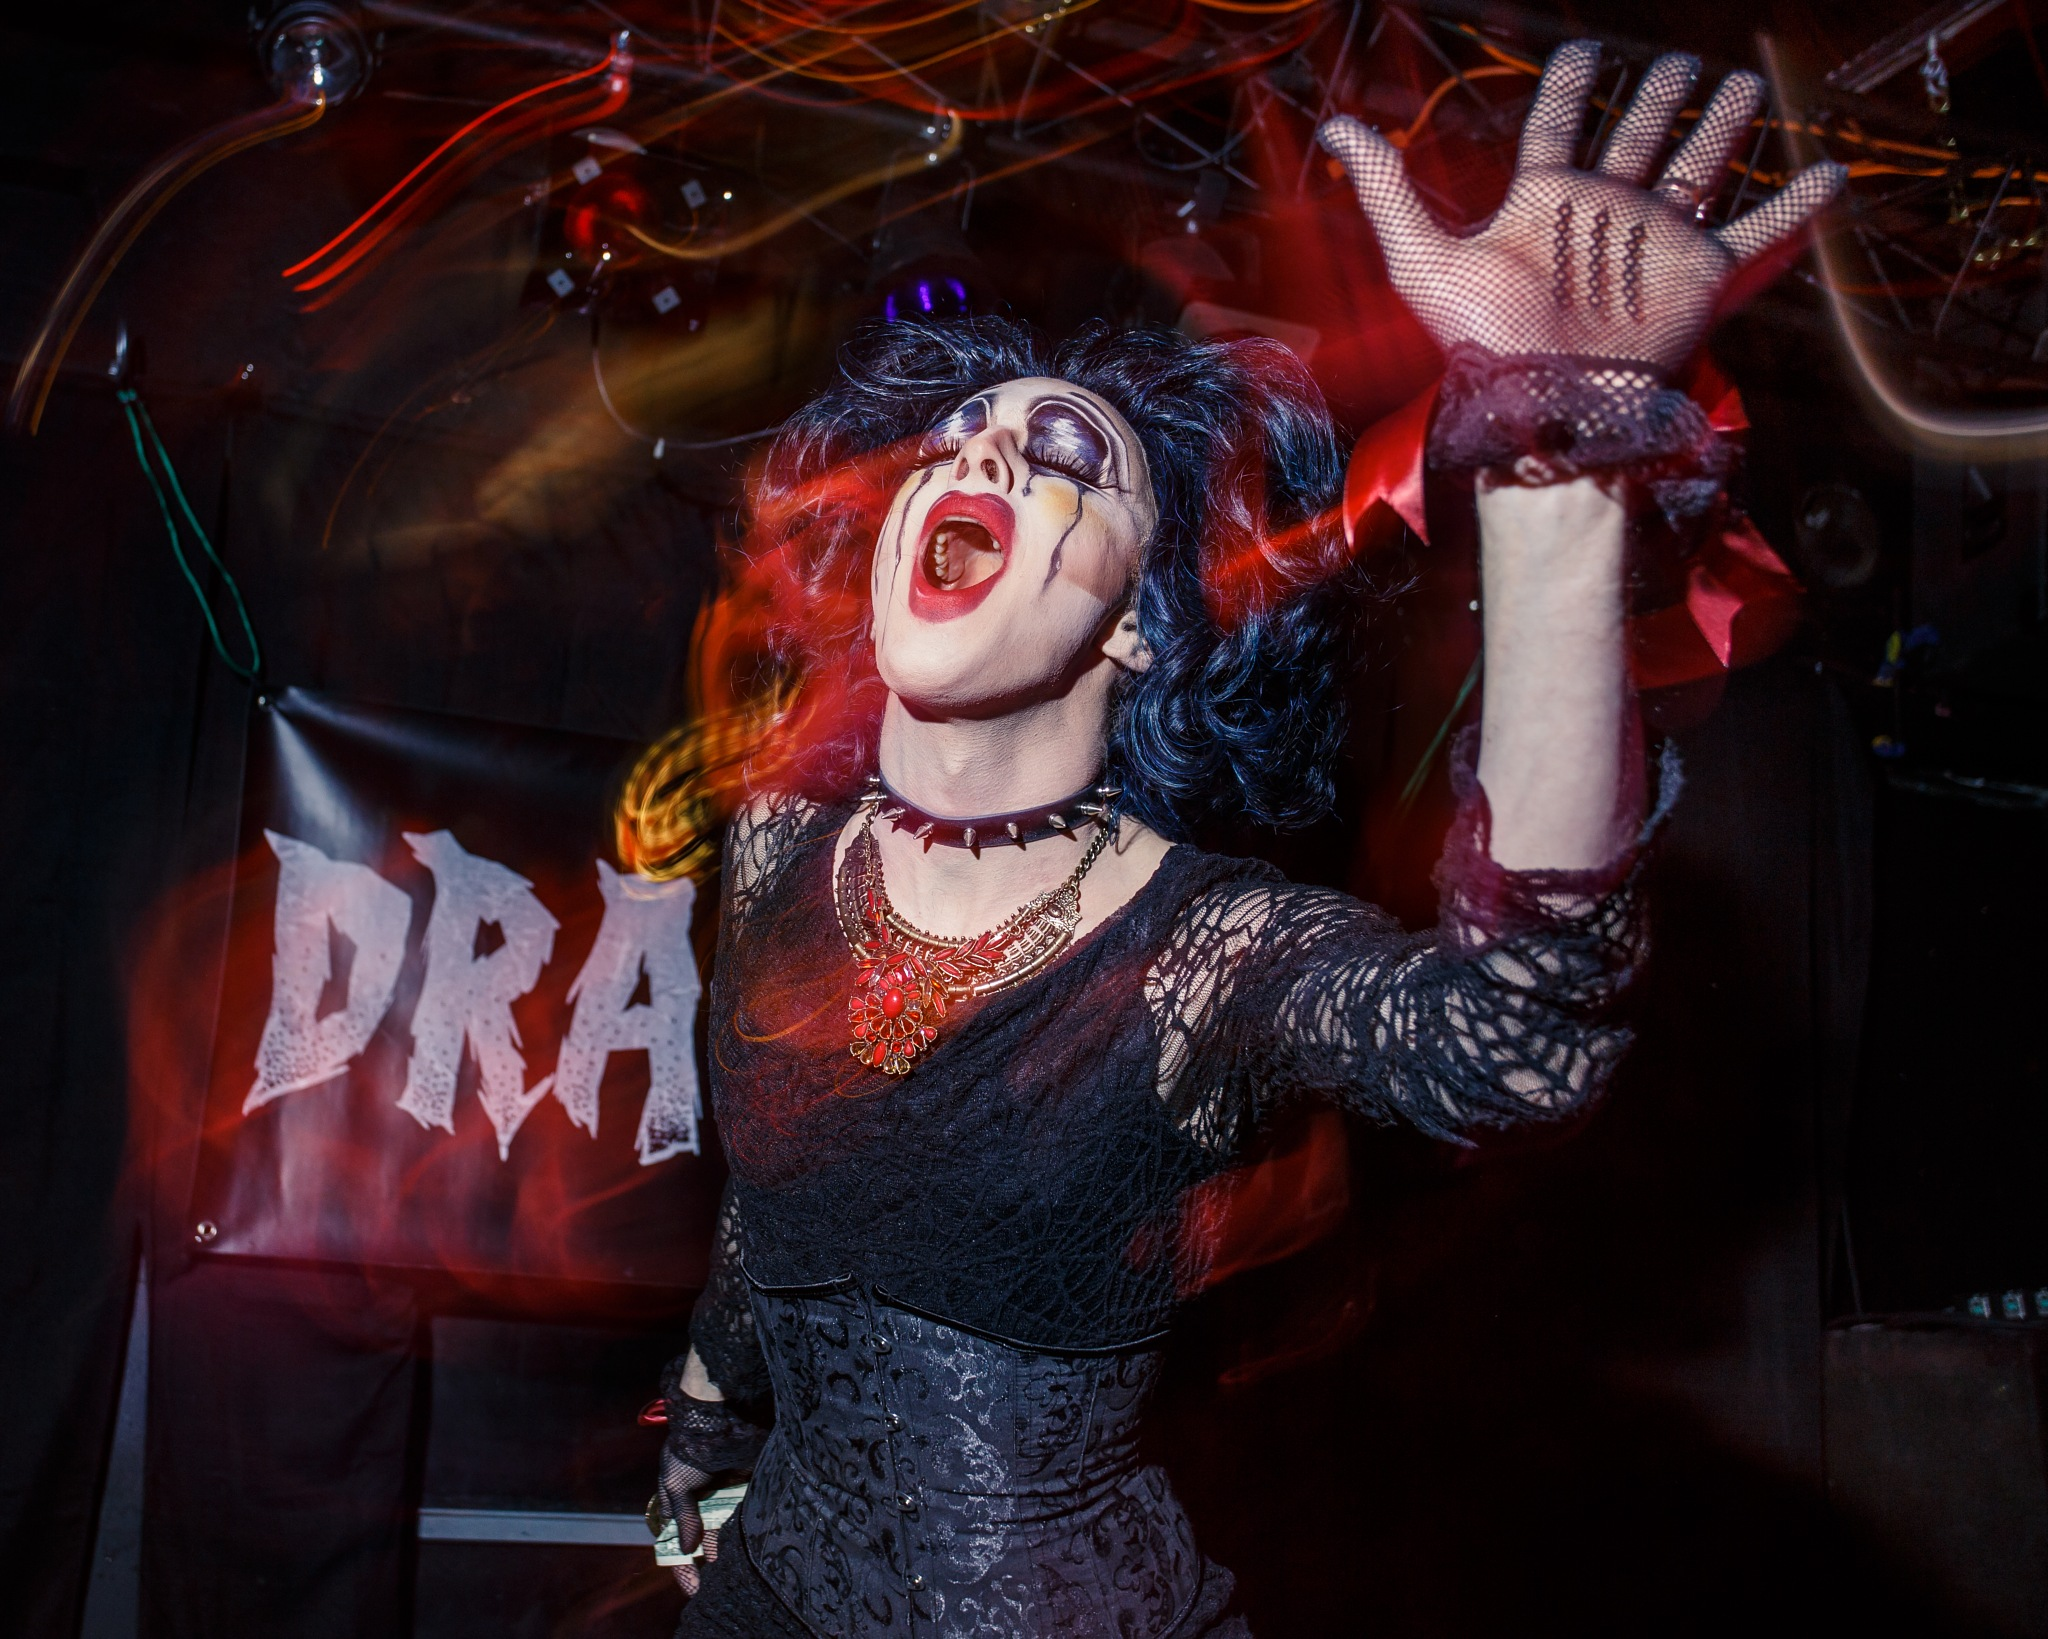 patience darling / dragzilla / chicago / mar 29 2018 by john mourlas